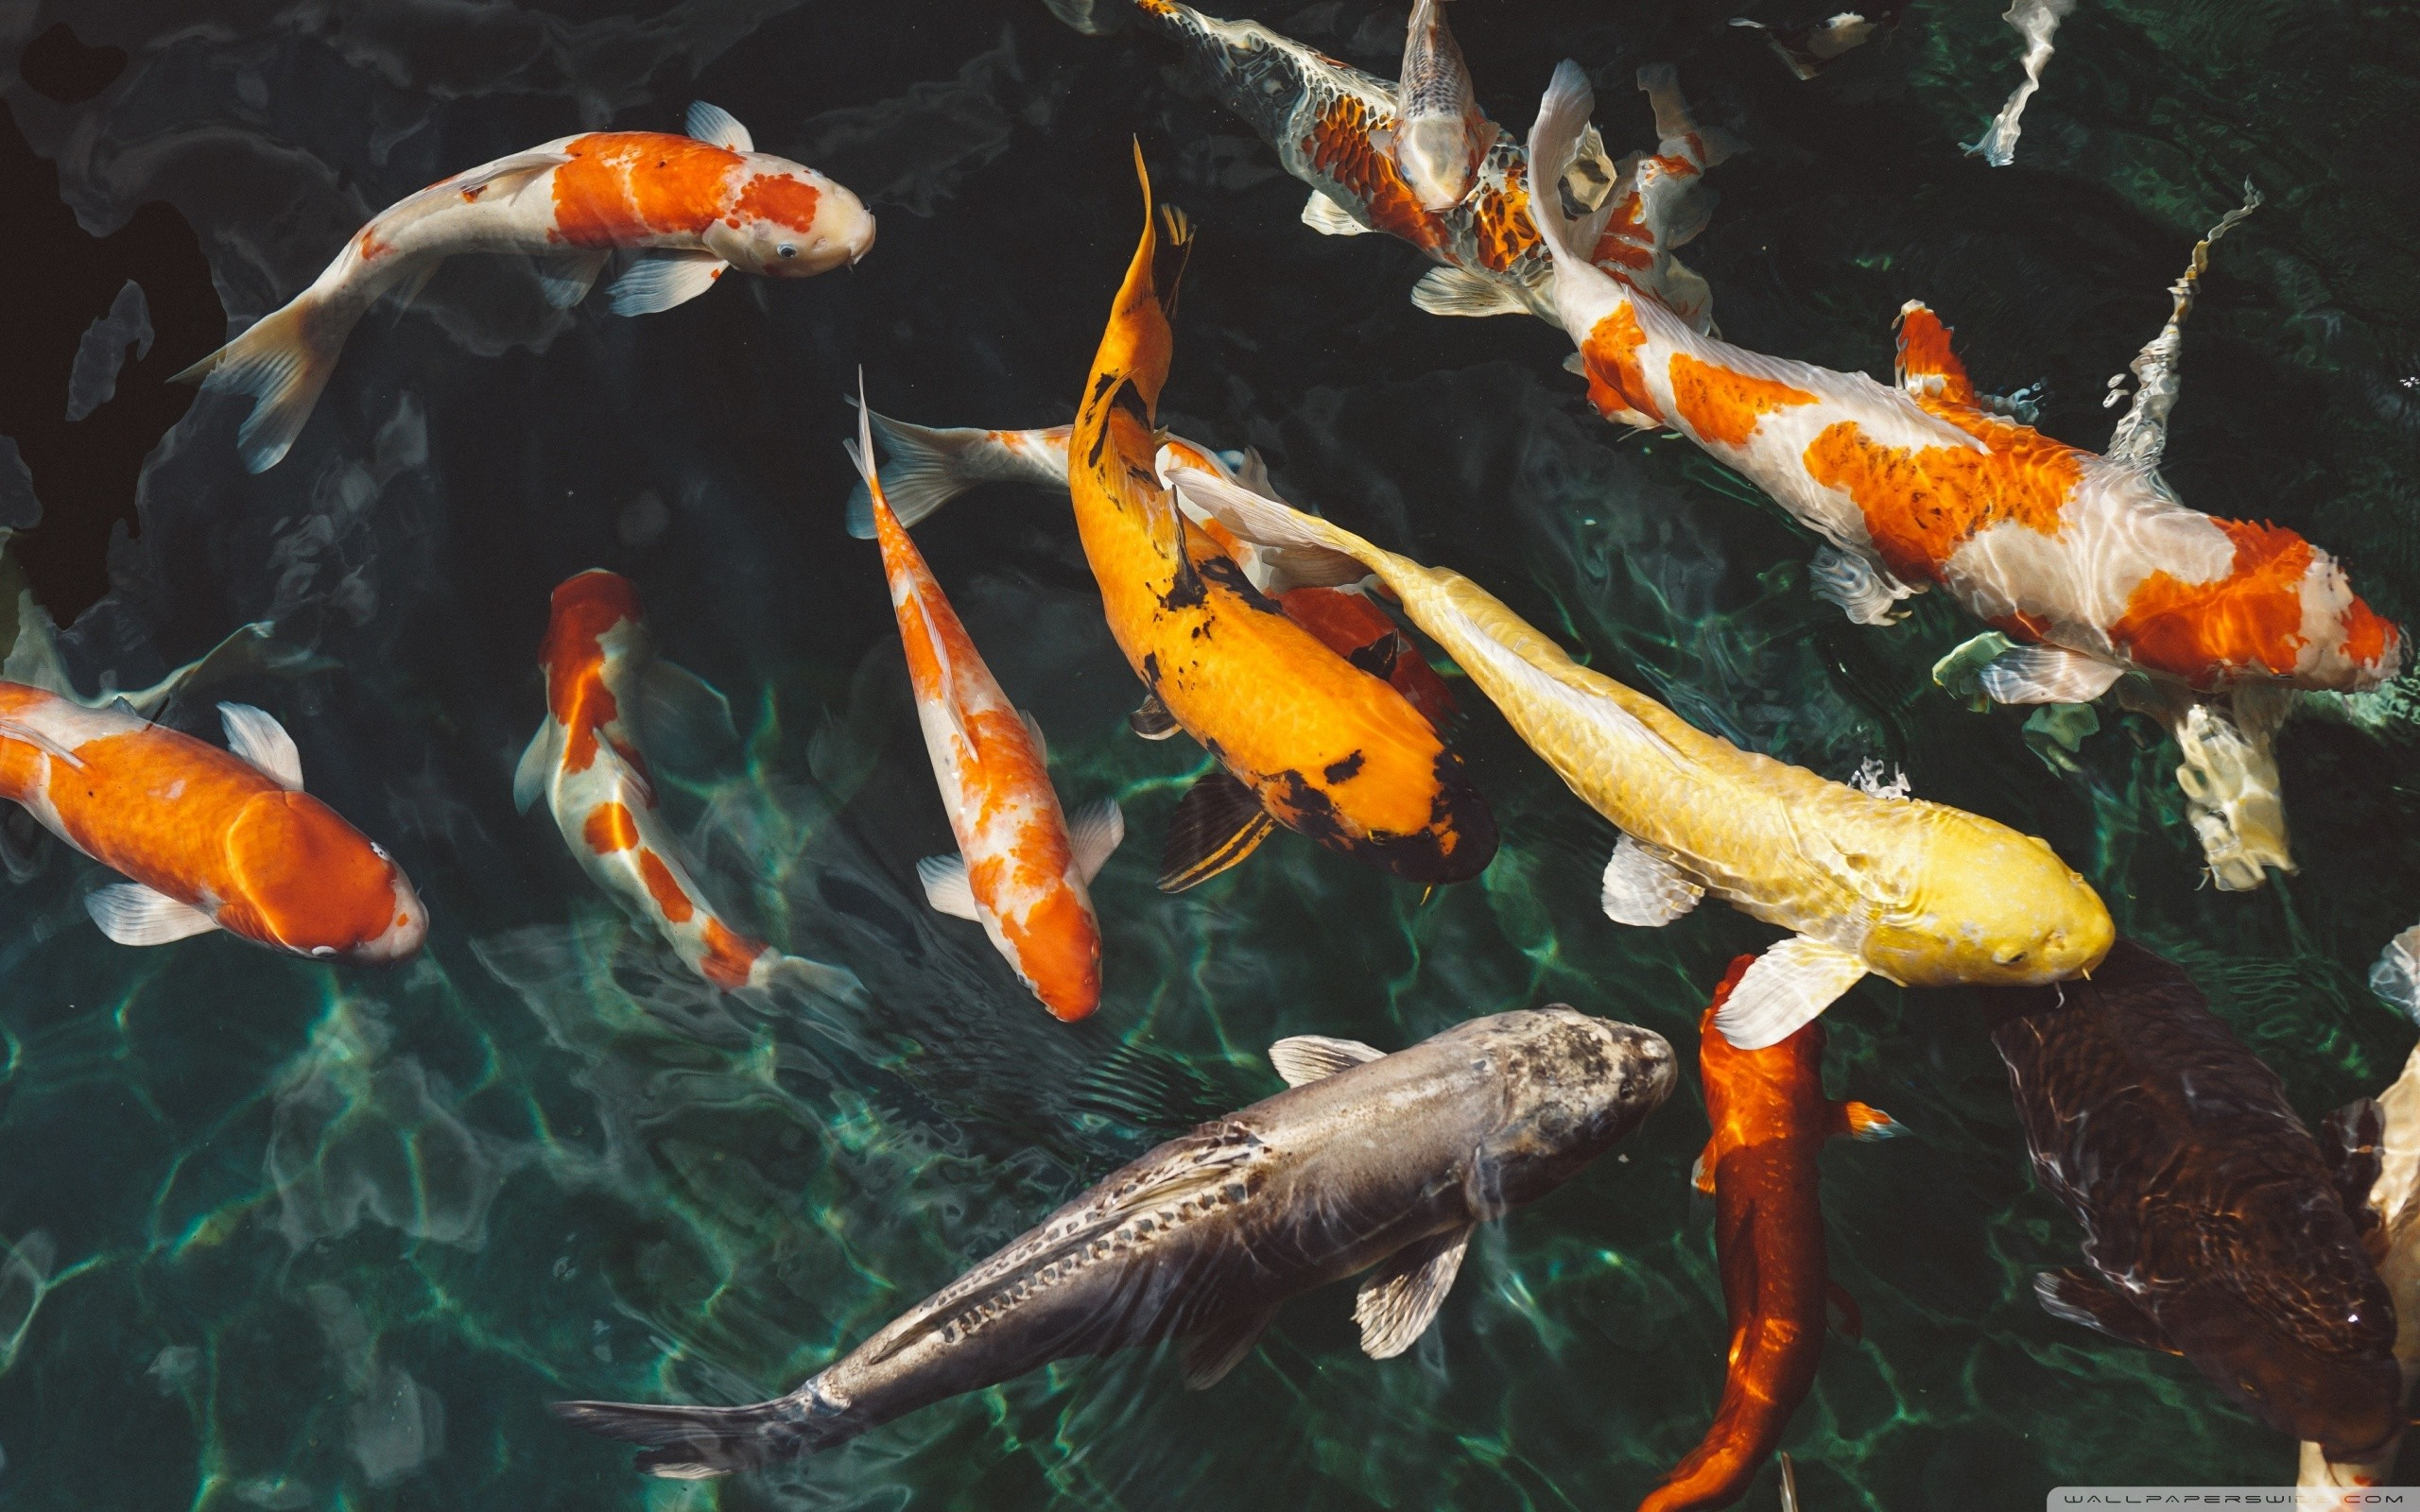 2560x1600 Koi Fish Pond Wallpapers, Koi Fish Pond Image Galleries, 50 | W